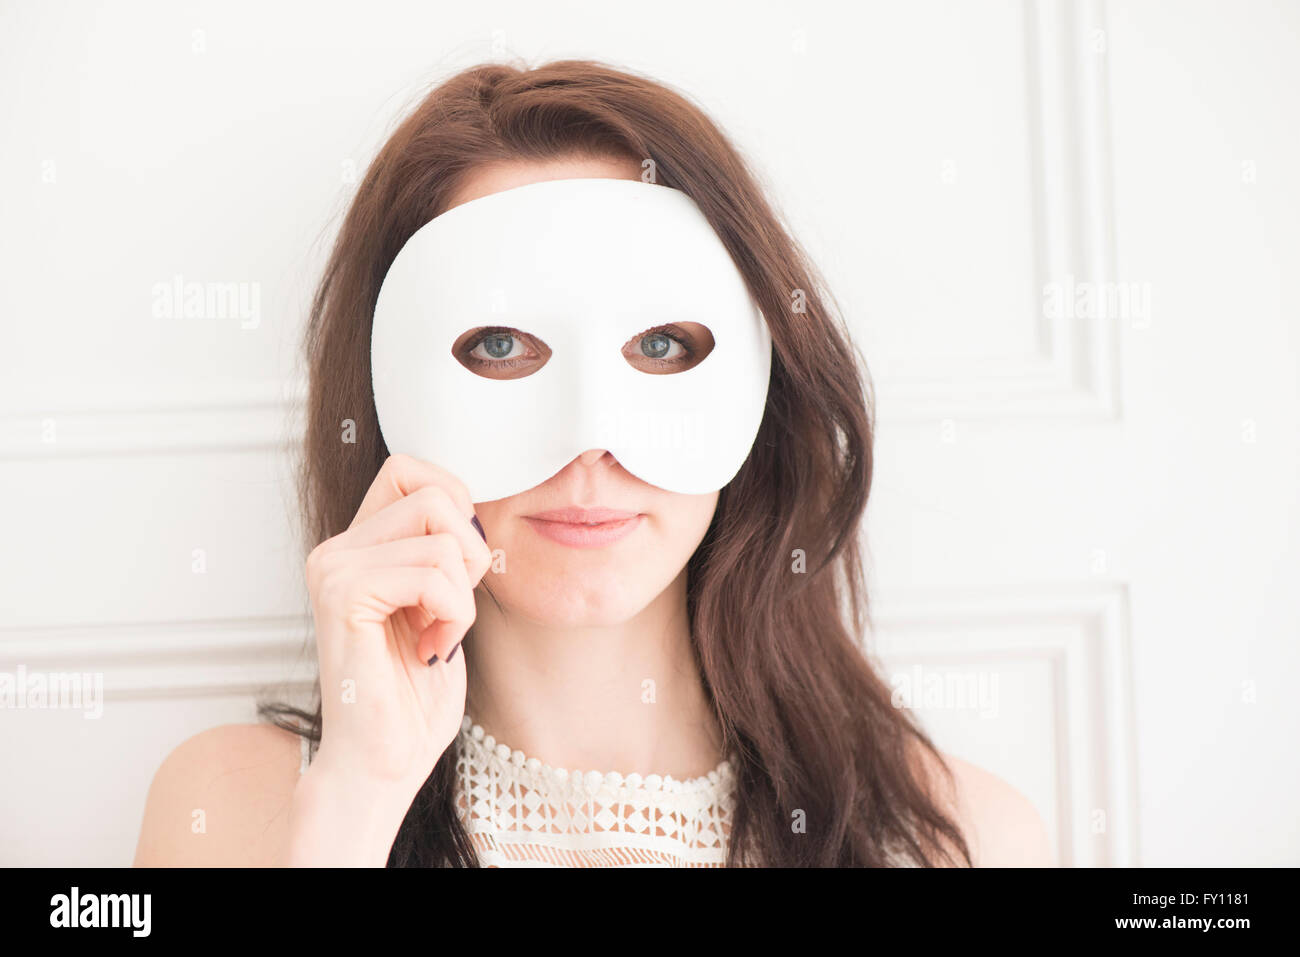 Woman hiding face behind white mask. Concept of identity, mystery, and disguise. - Stock Image